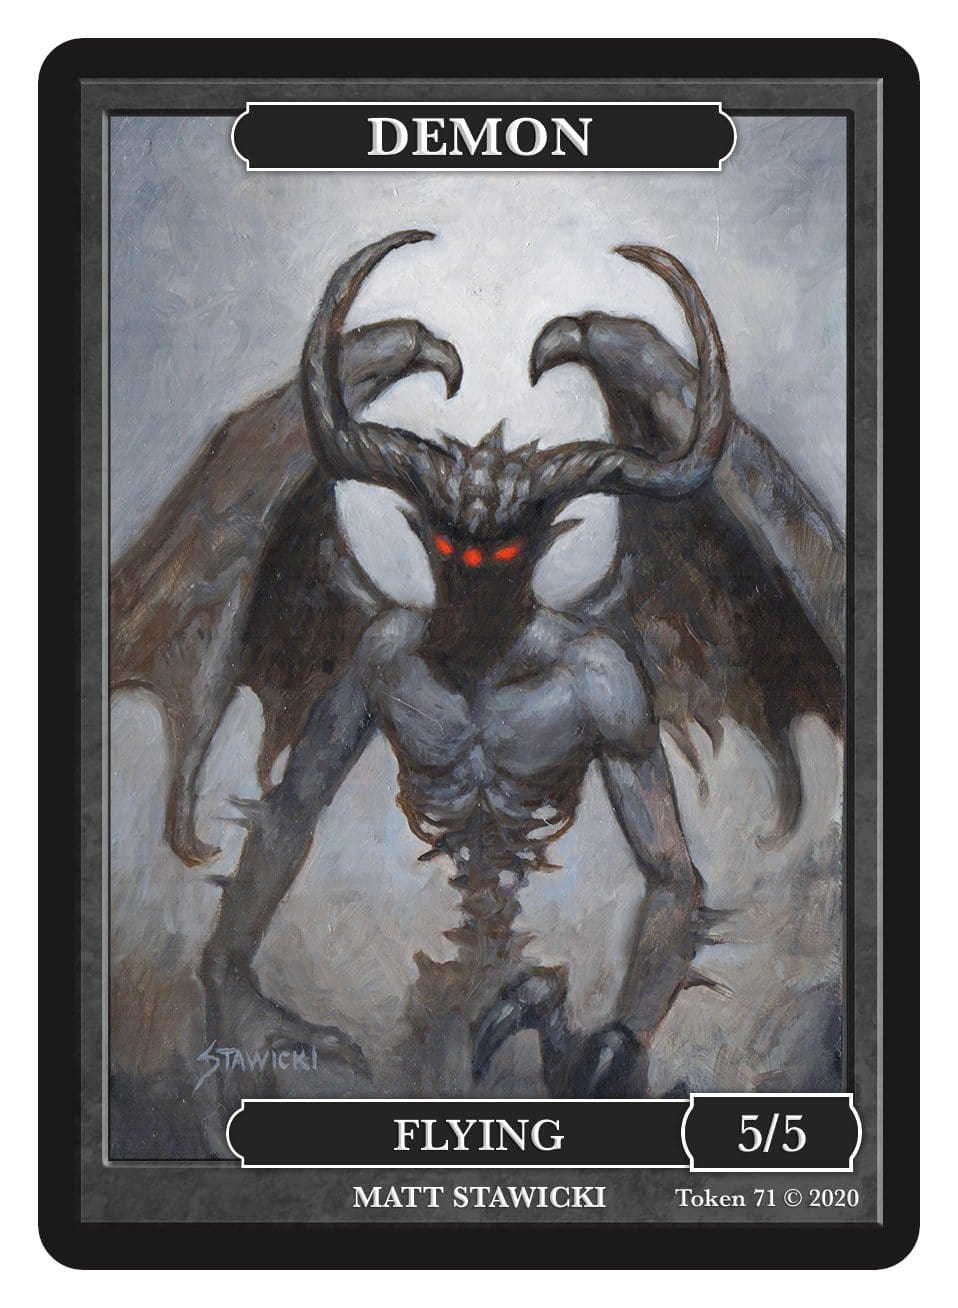 Demon Token (5/5 - Flying) by Matt Stawicki